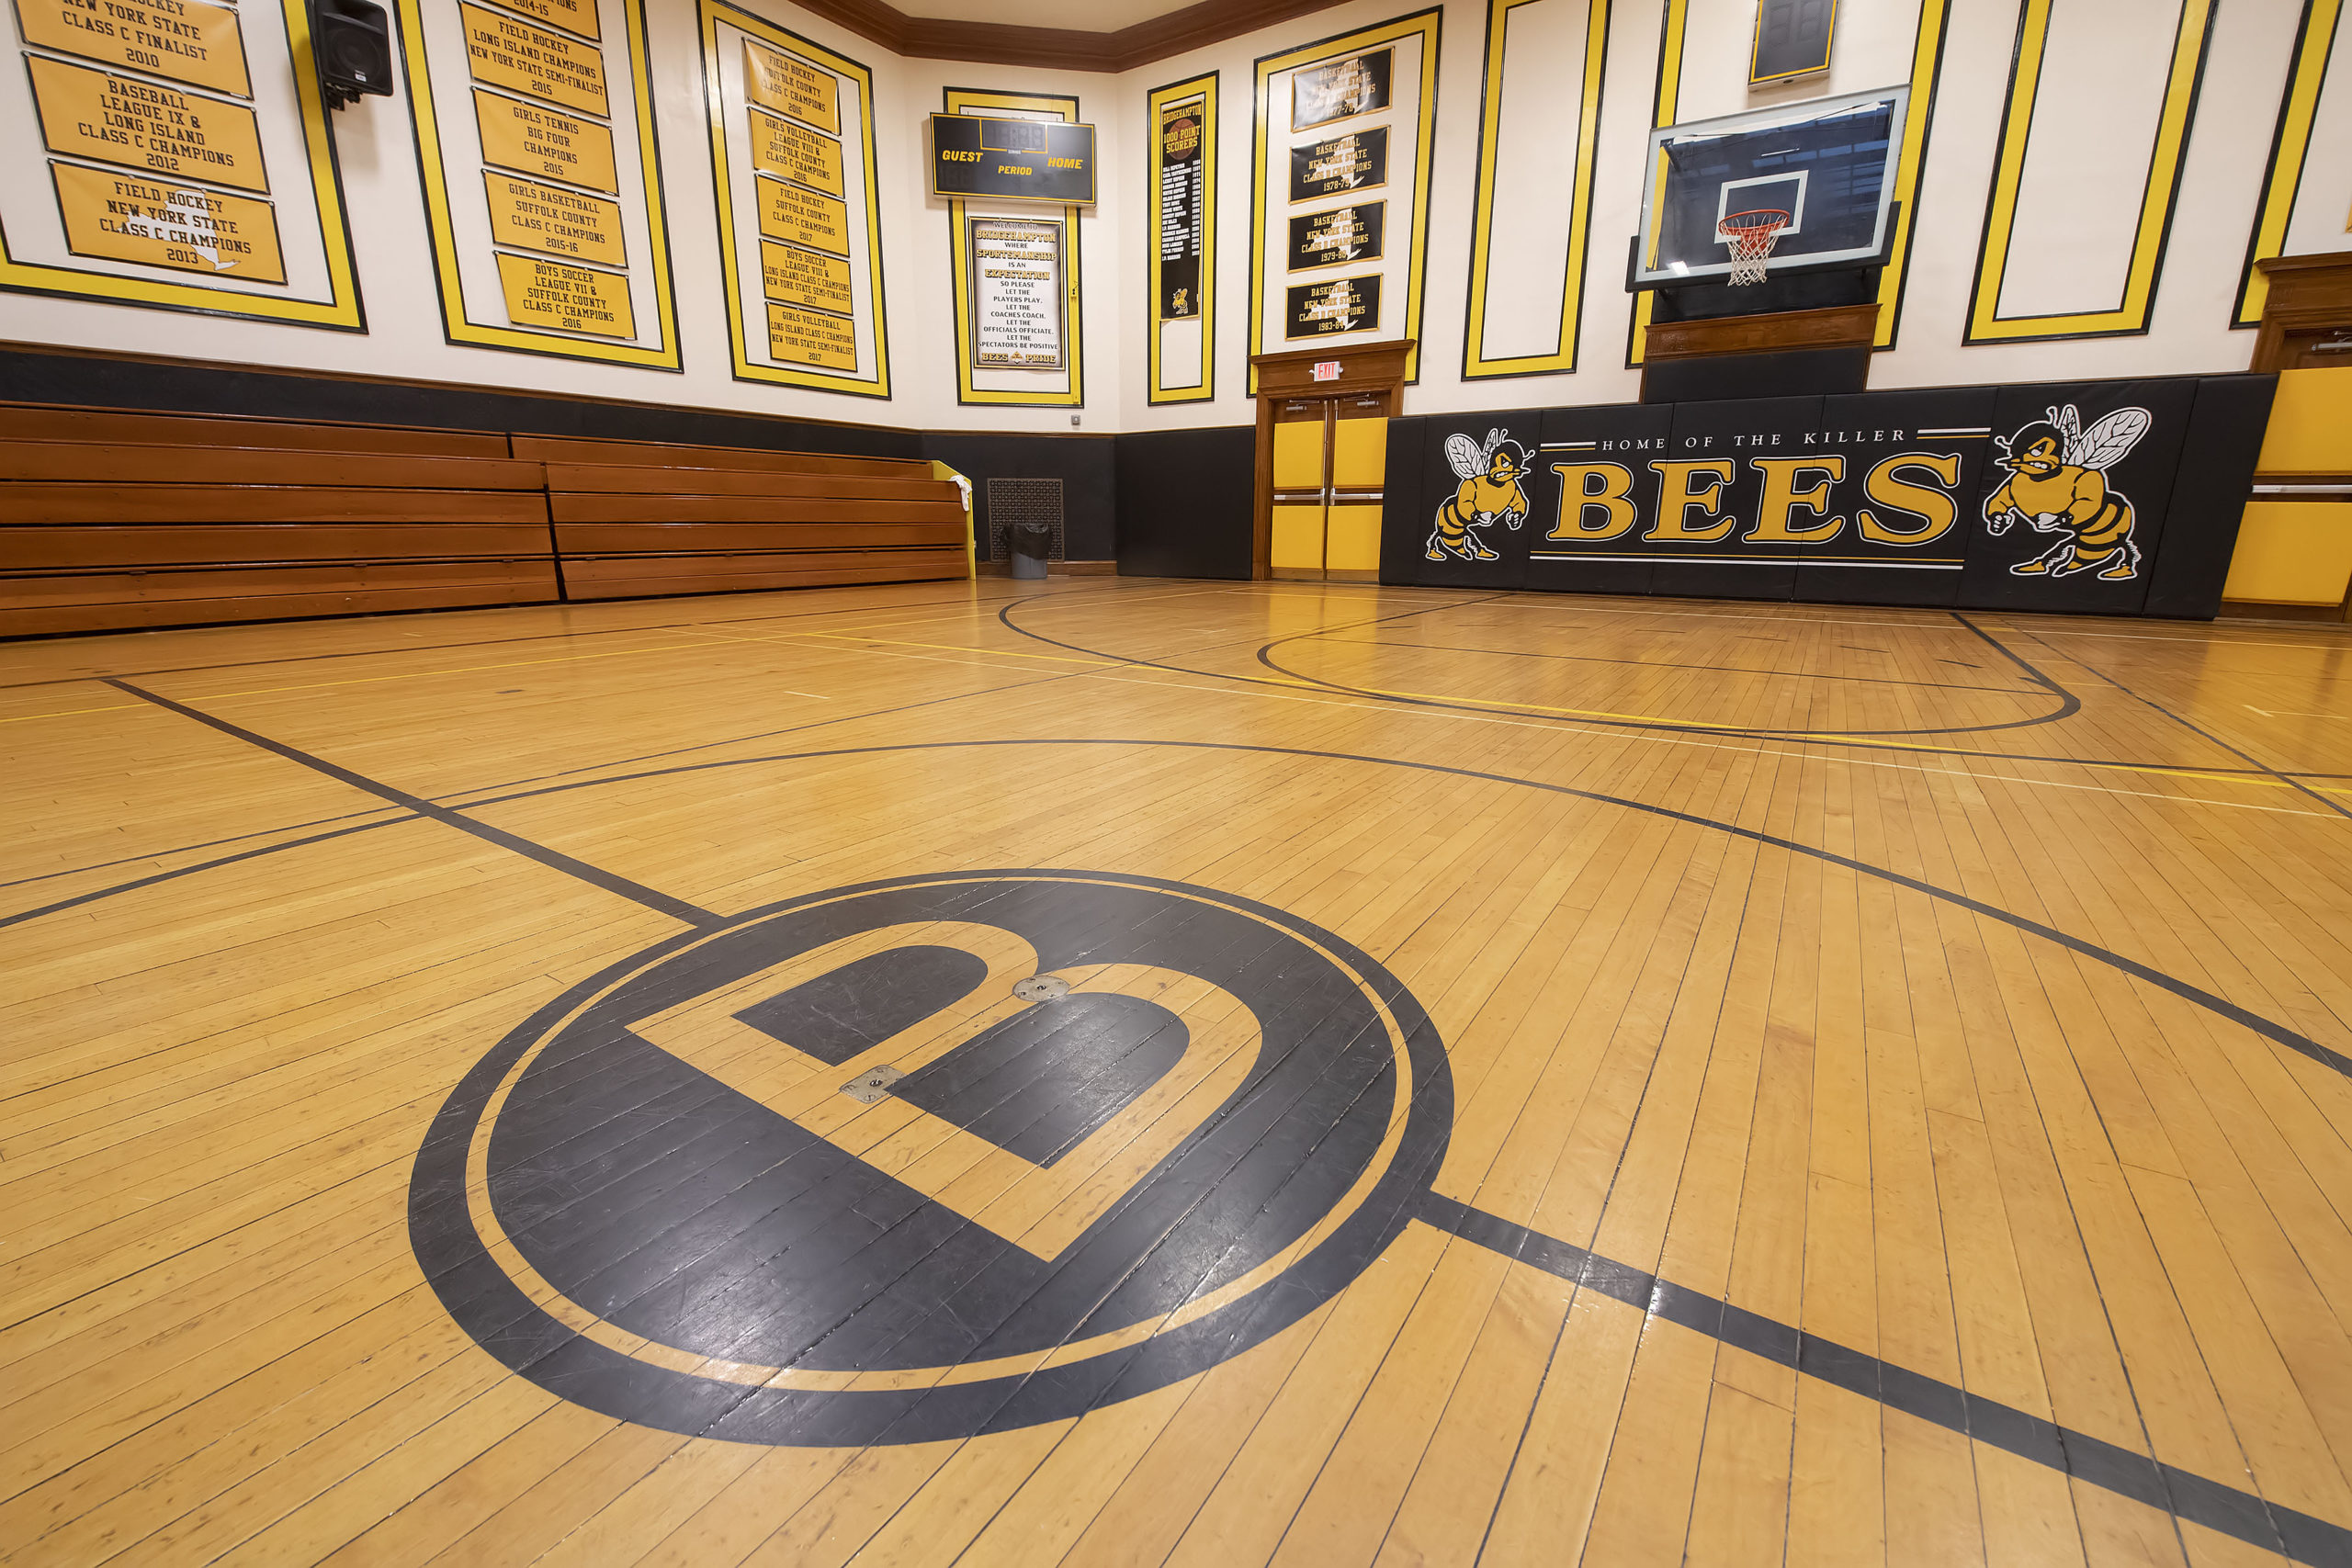 The Hive measures 37 feet sideline to sideline and 55 feet baseline to baseline, 13 feet and 19 feet smaller, respectively, than a regulation-sized high school basketball court.